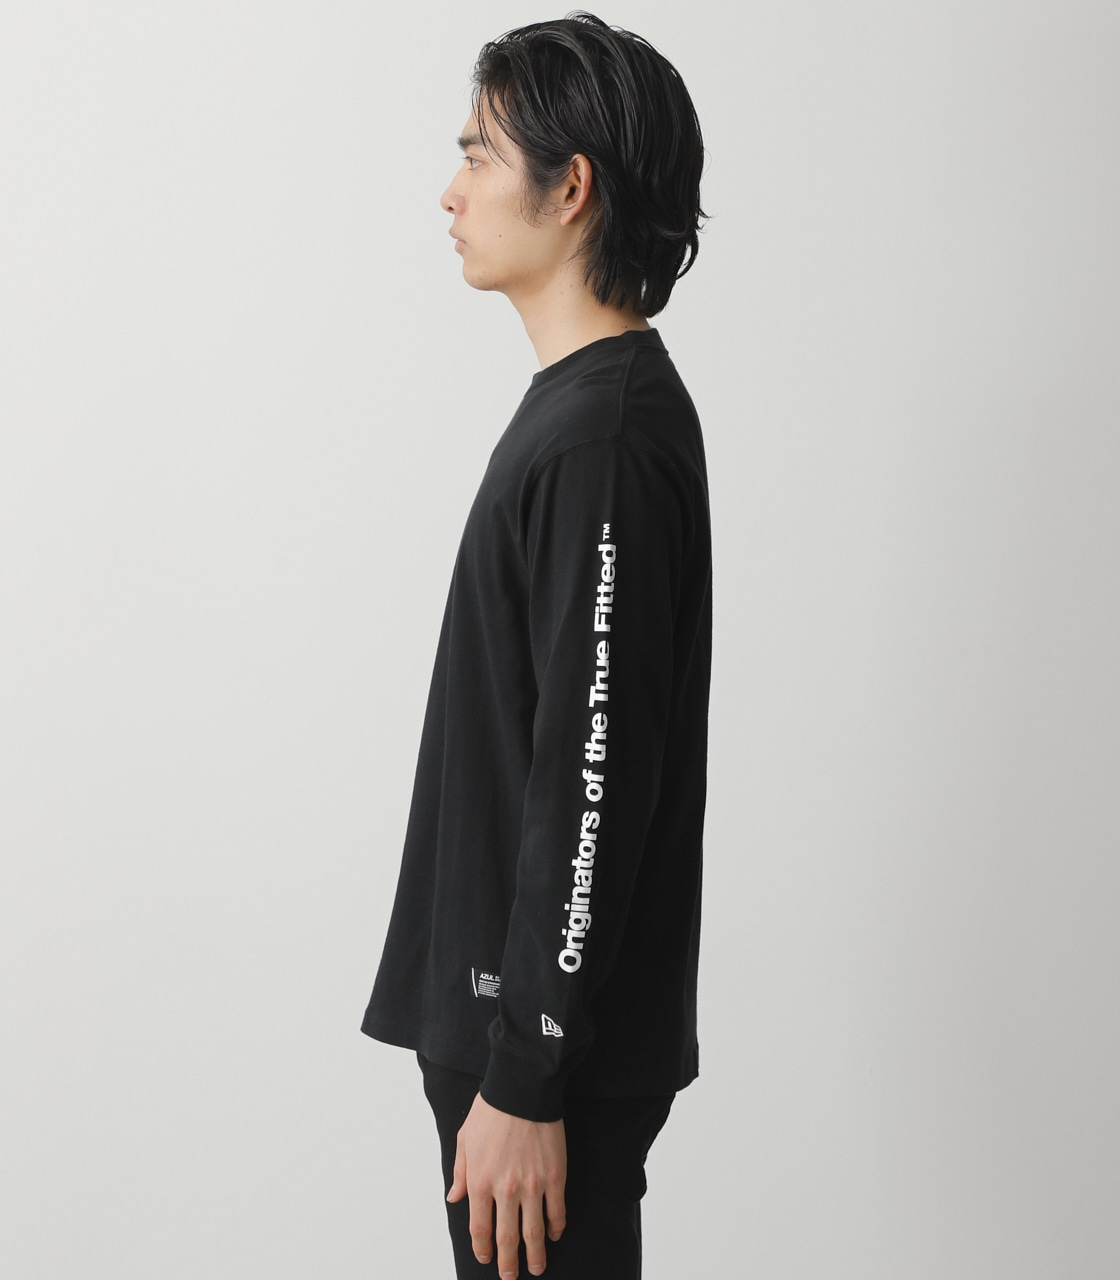 NEW ERA×AZUL LONG T-SHIRTS/NEW ERA×AZULロングTシャツ 詳細画像 BLK 6